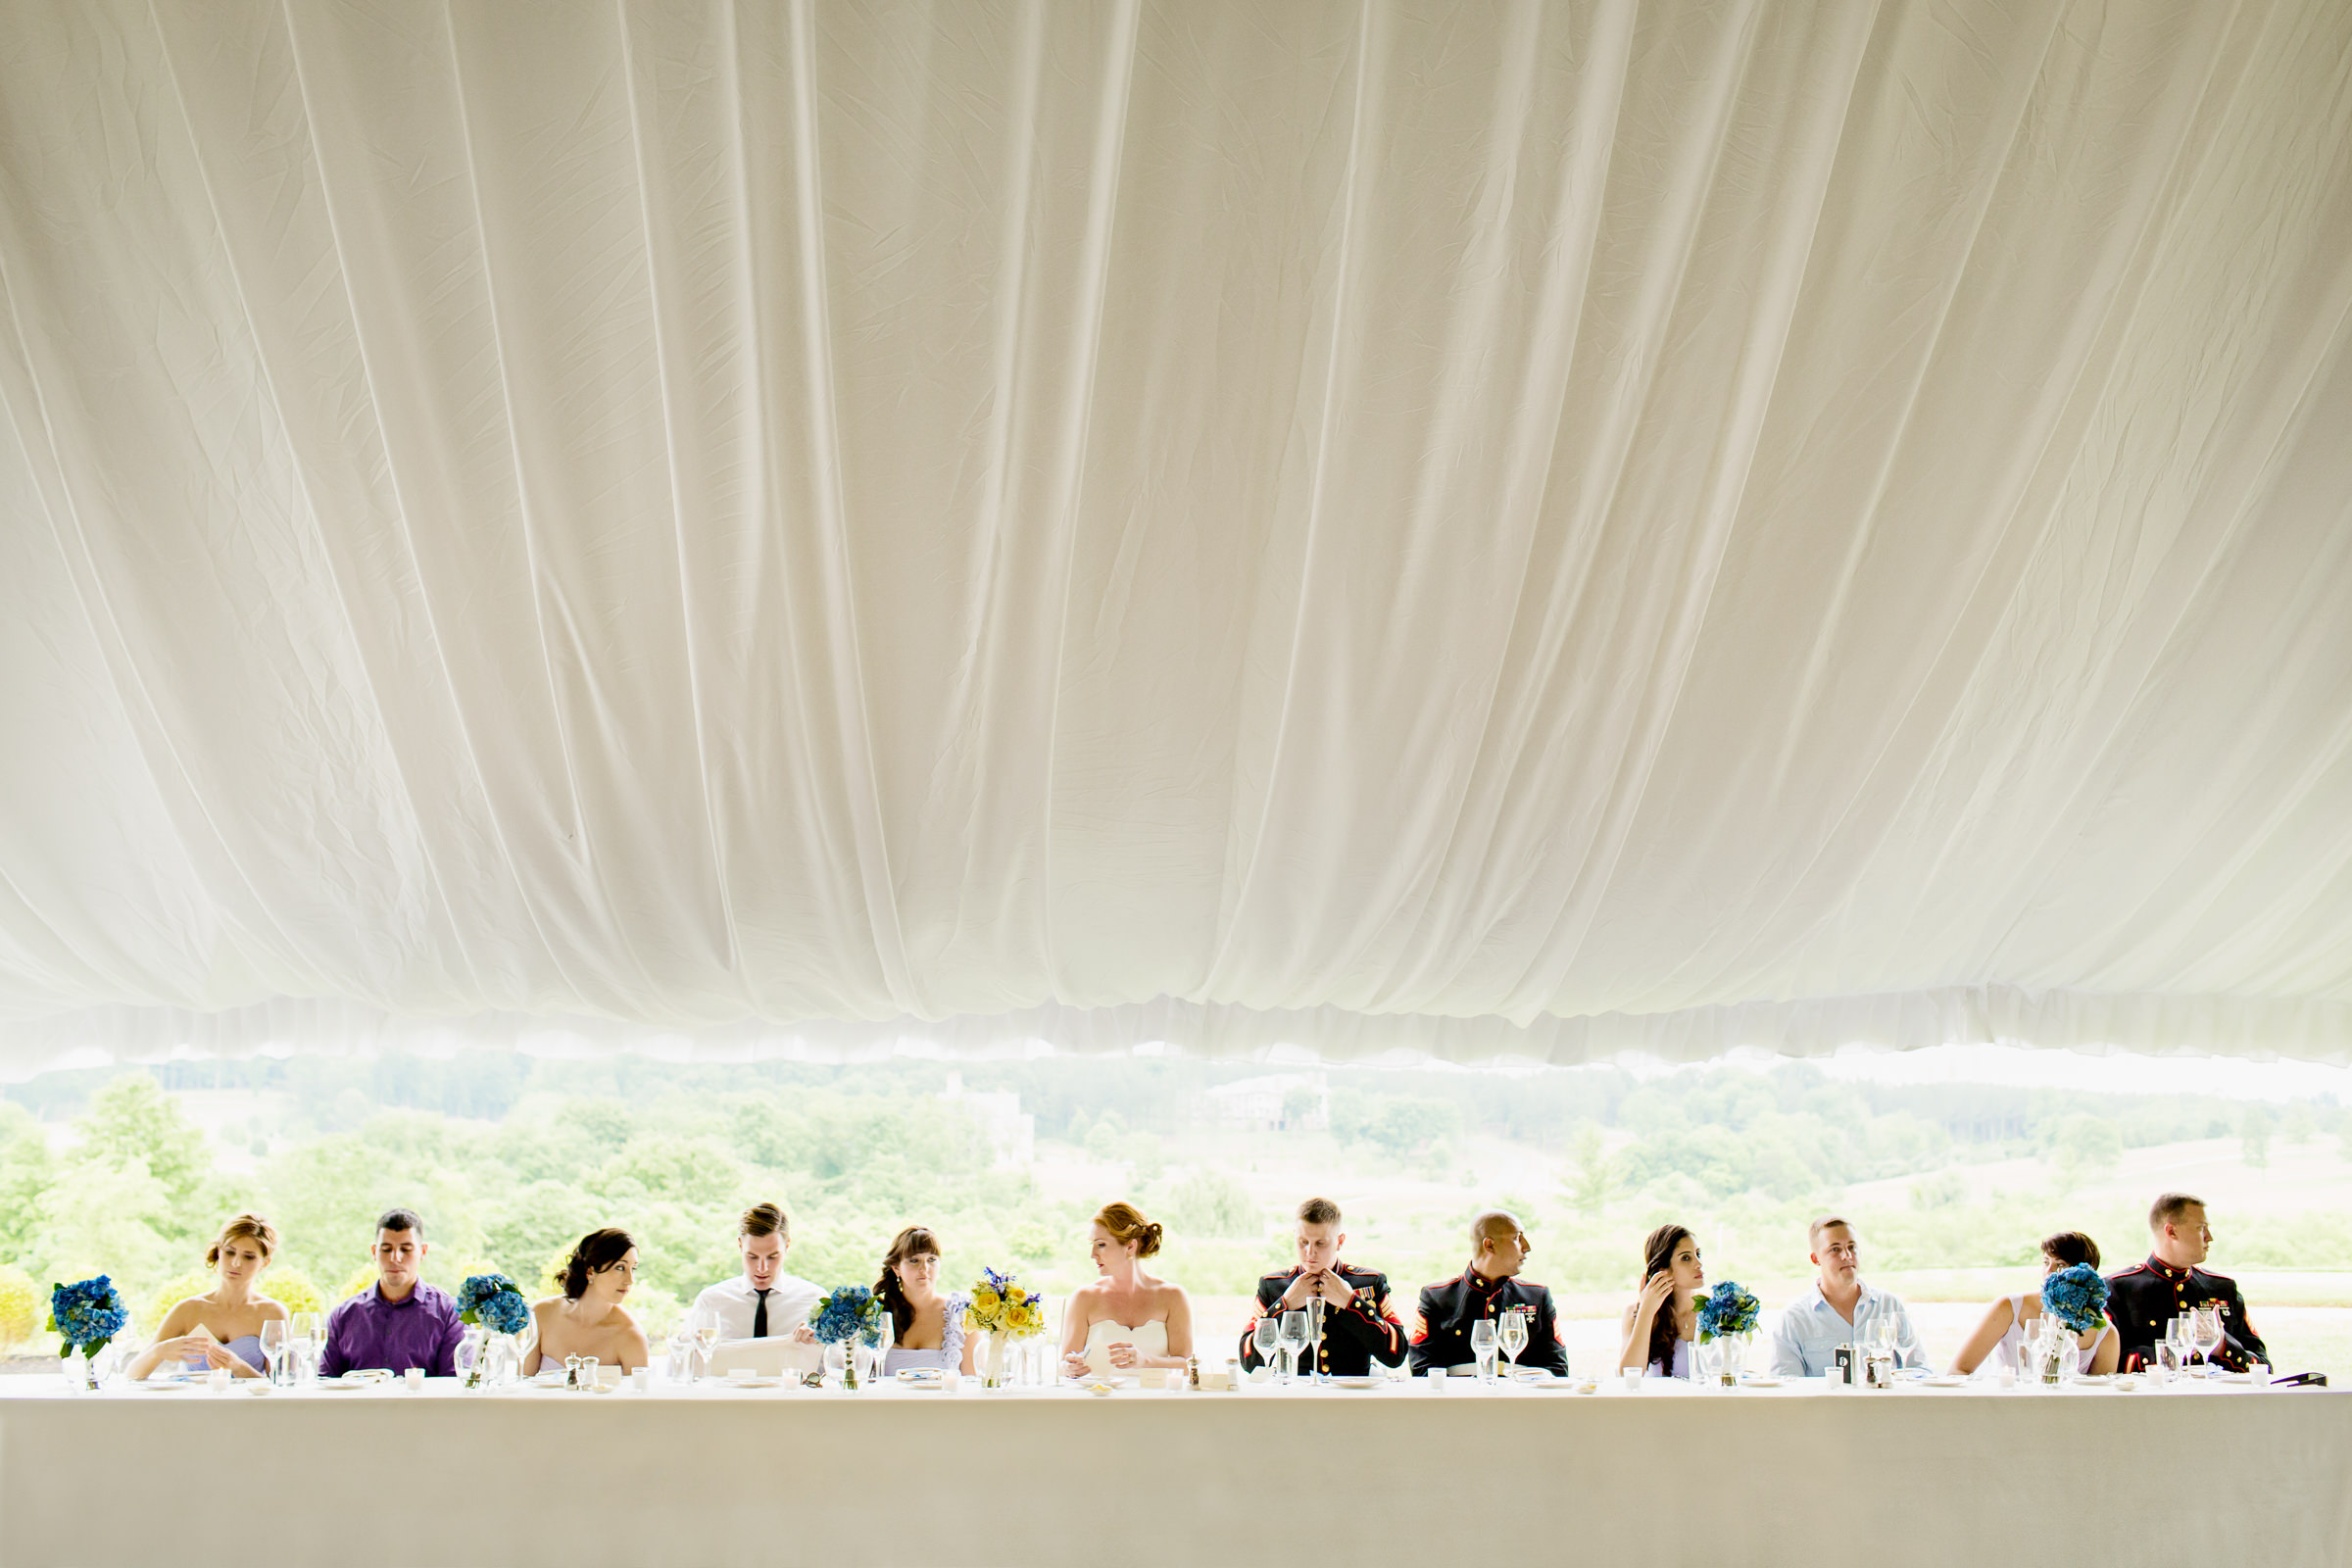 Bridal party at long table under big white tent - photo by Procopio Photography